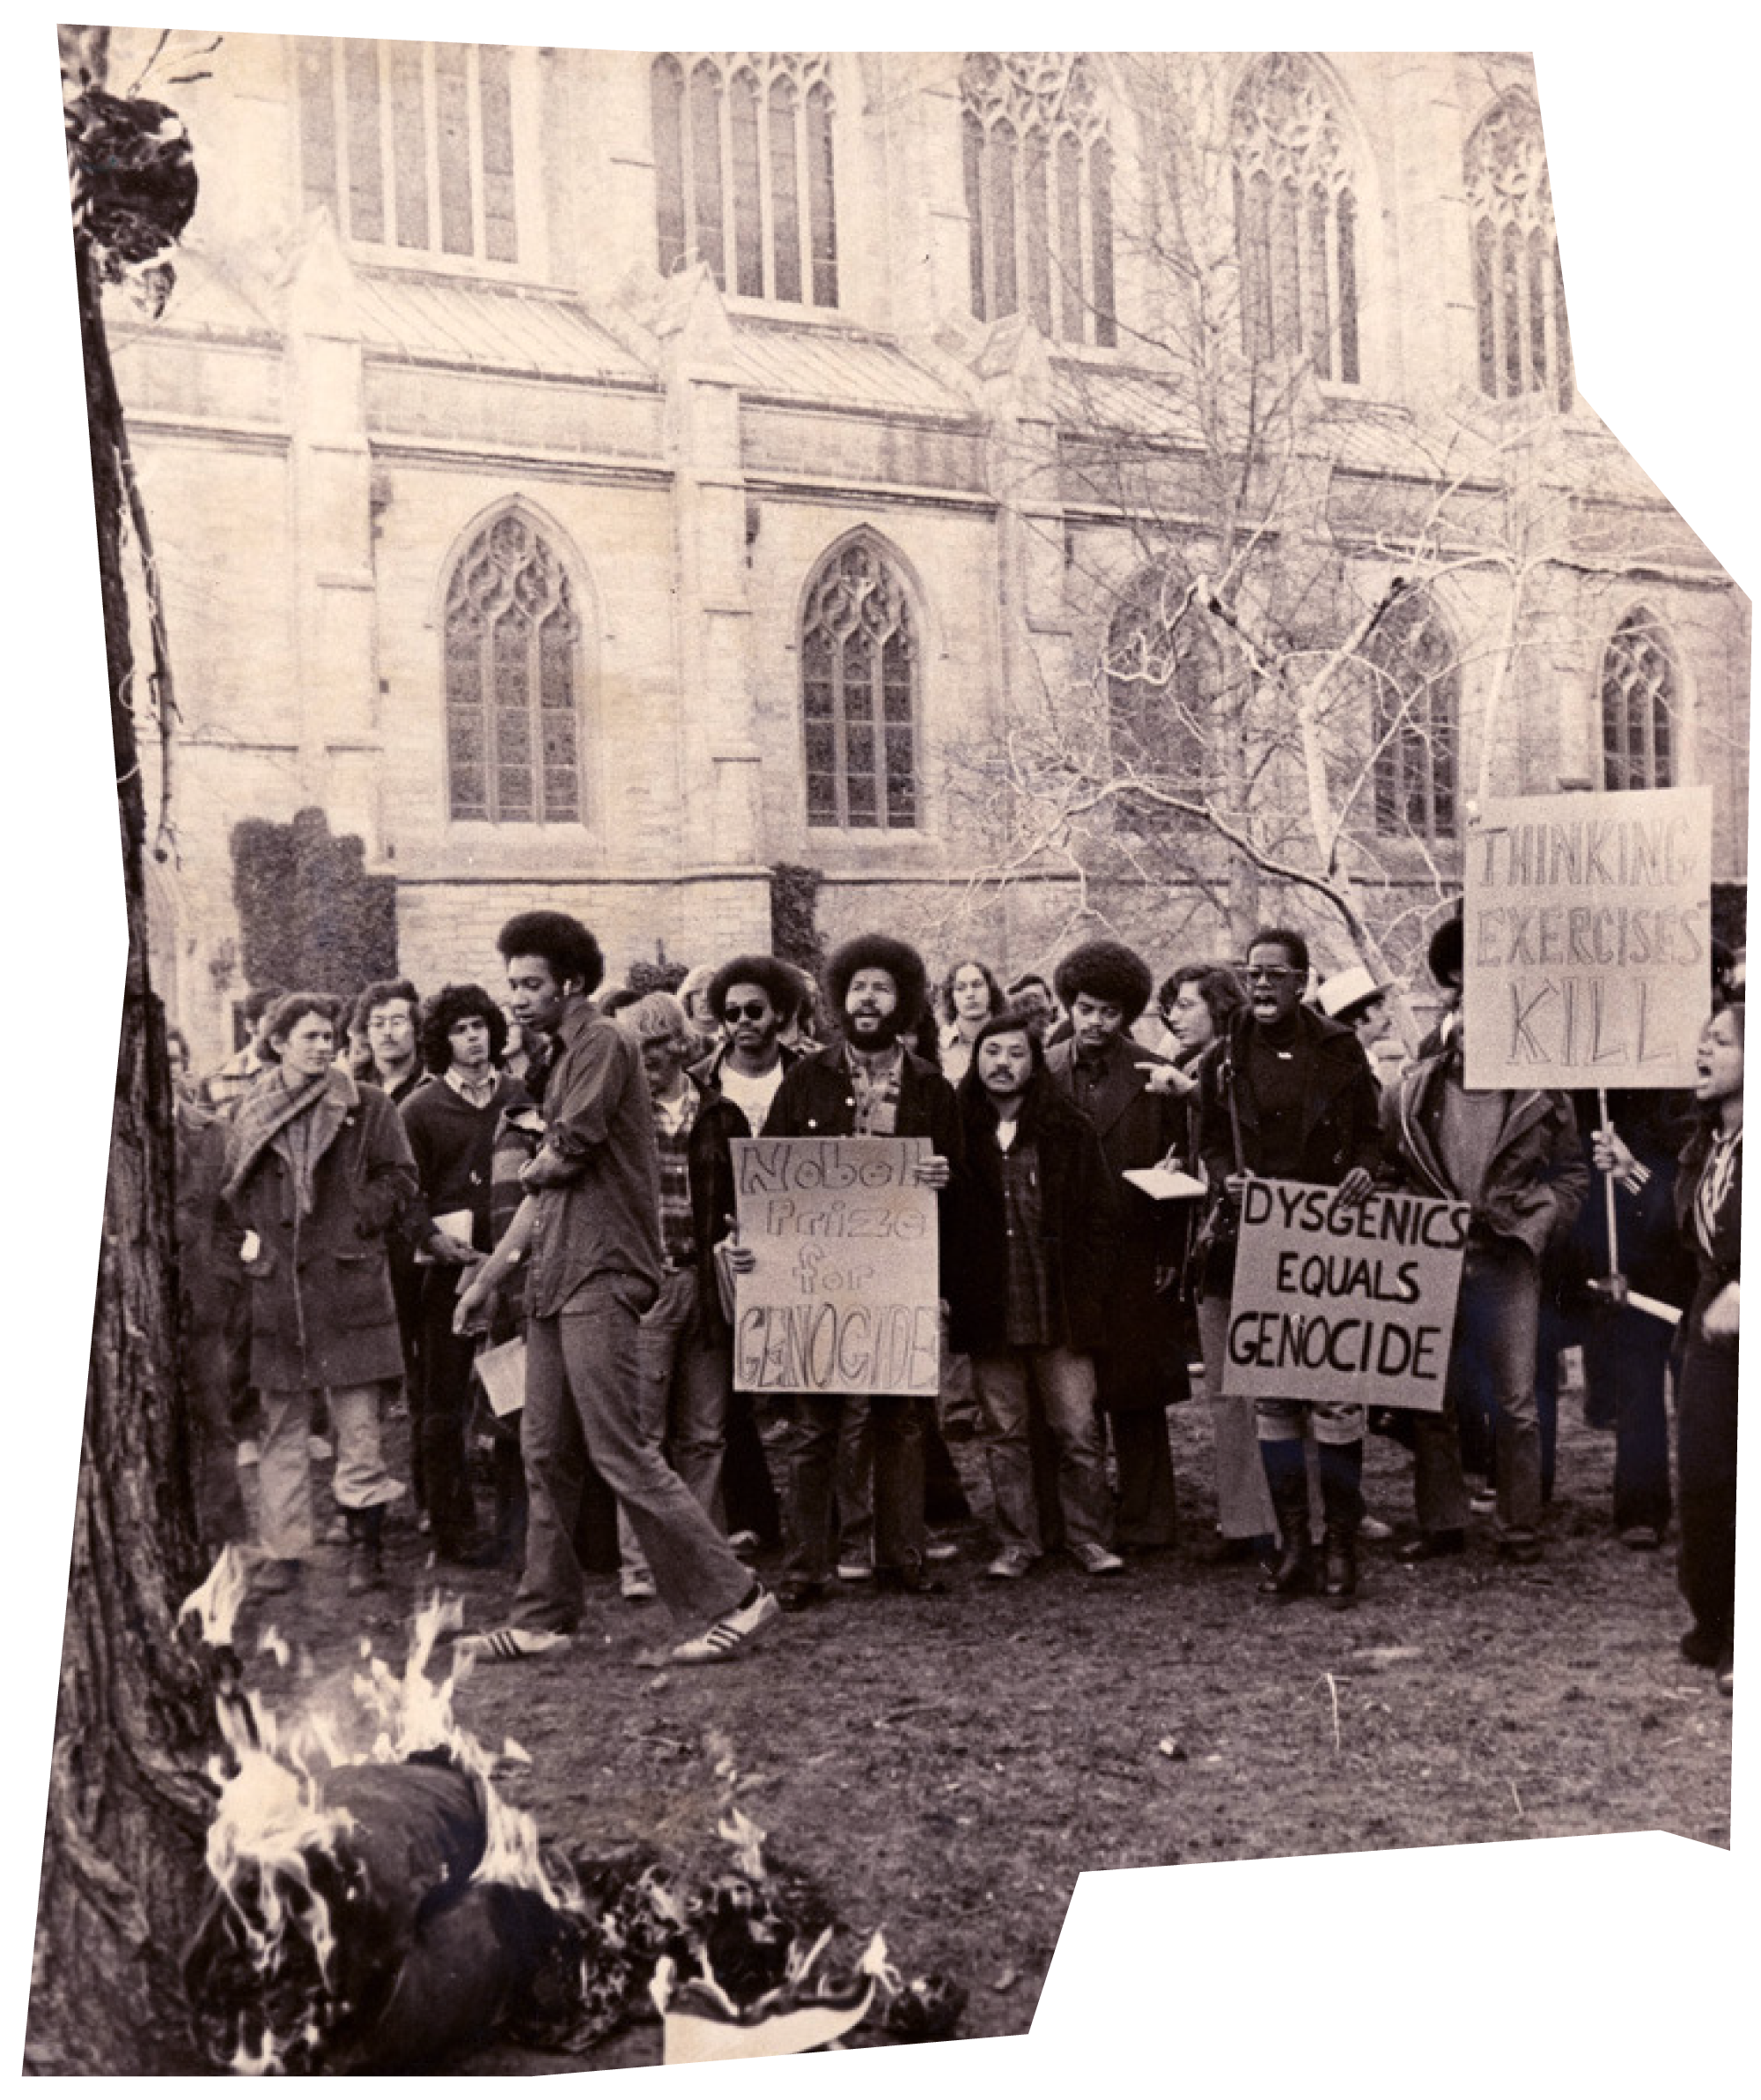 """Group of students protesting an event with William B. Shockley outside McCosh Hall in 1973, with signs including """"Nobel Prize for Genocide"""" and """"Dysgenics Equals Genocide."""""""